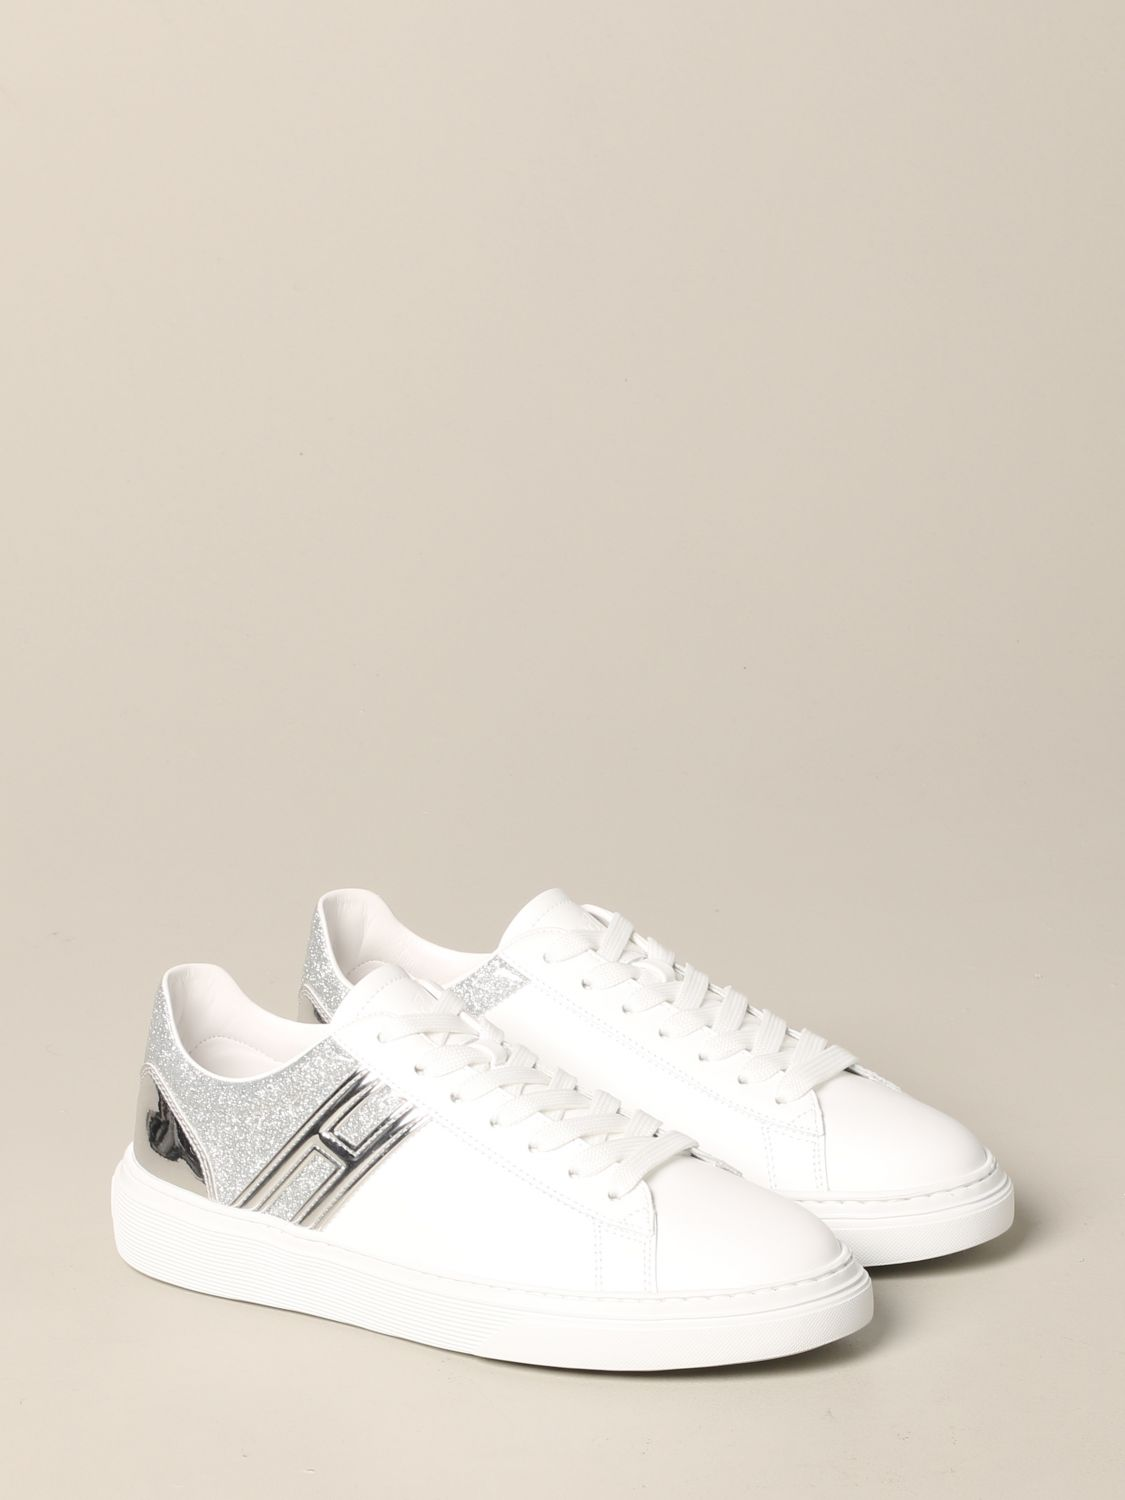 365 Hogan sneakers in leather and glitter with big H